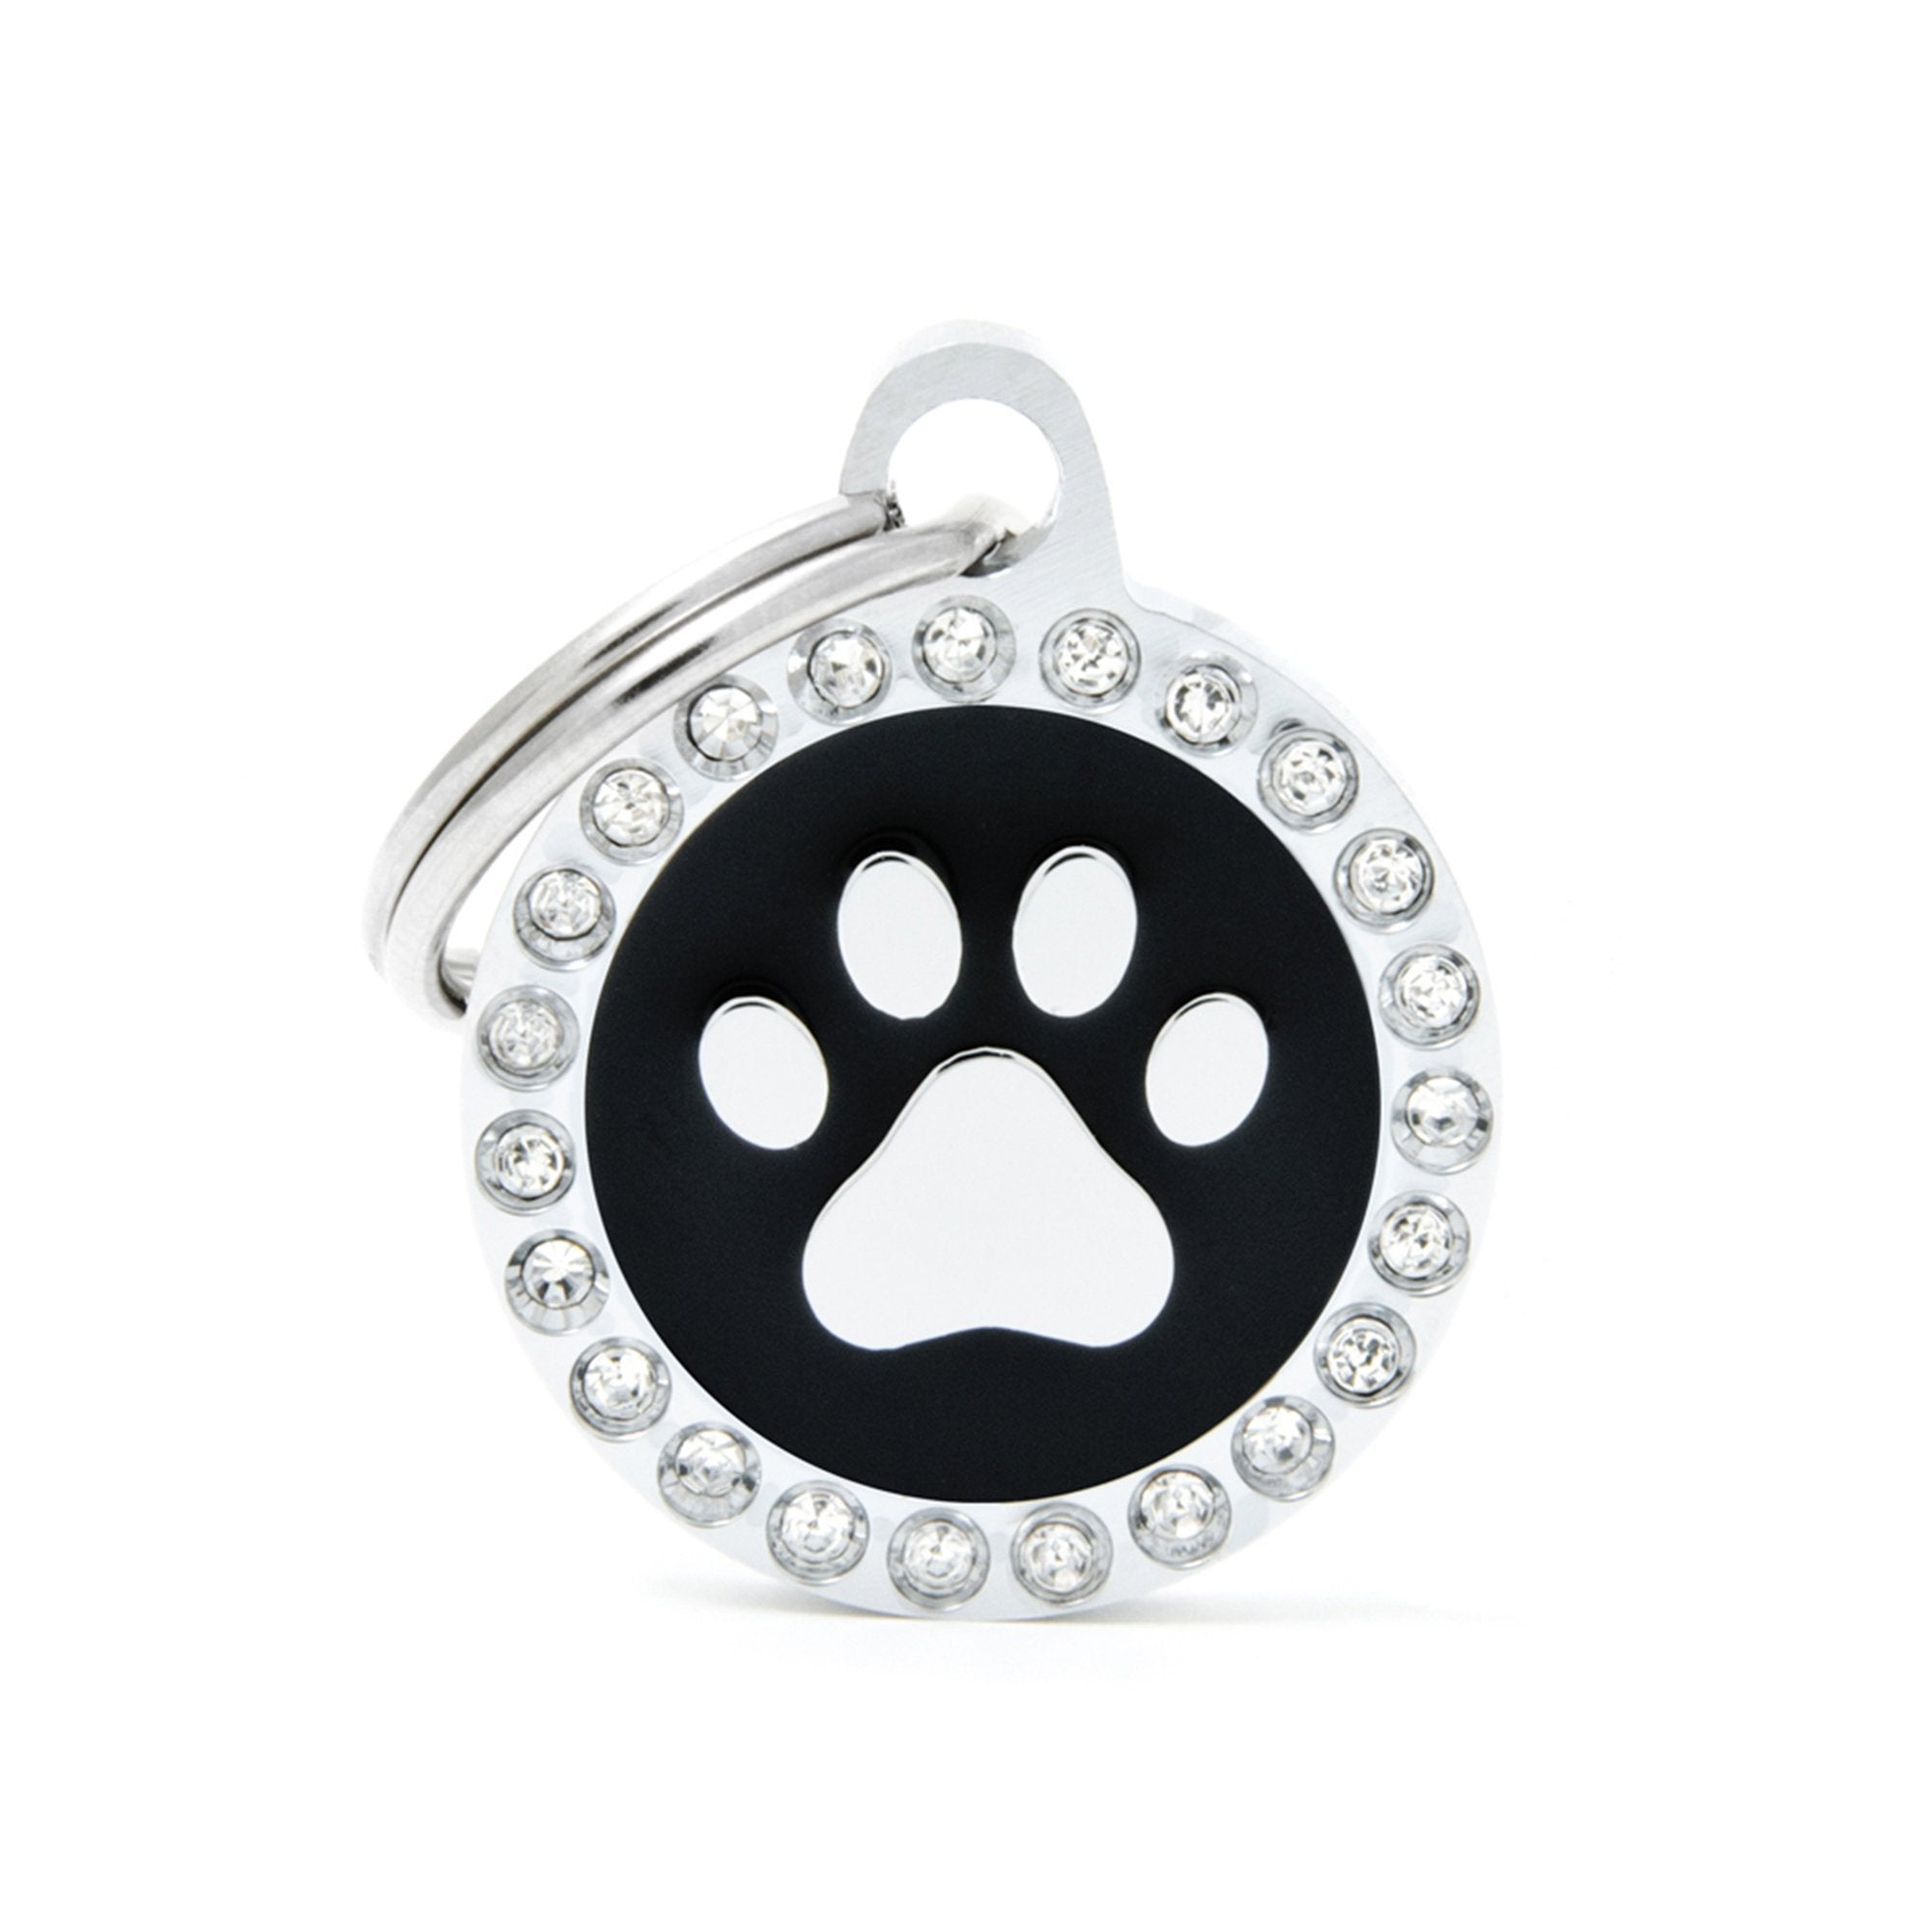 My Family Glam Black Paw Pet I.D. Tag